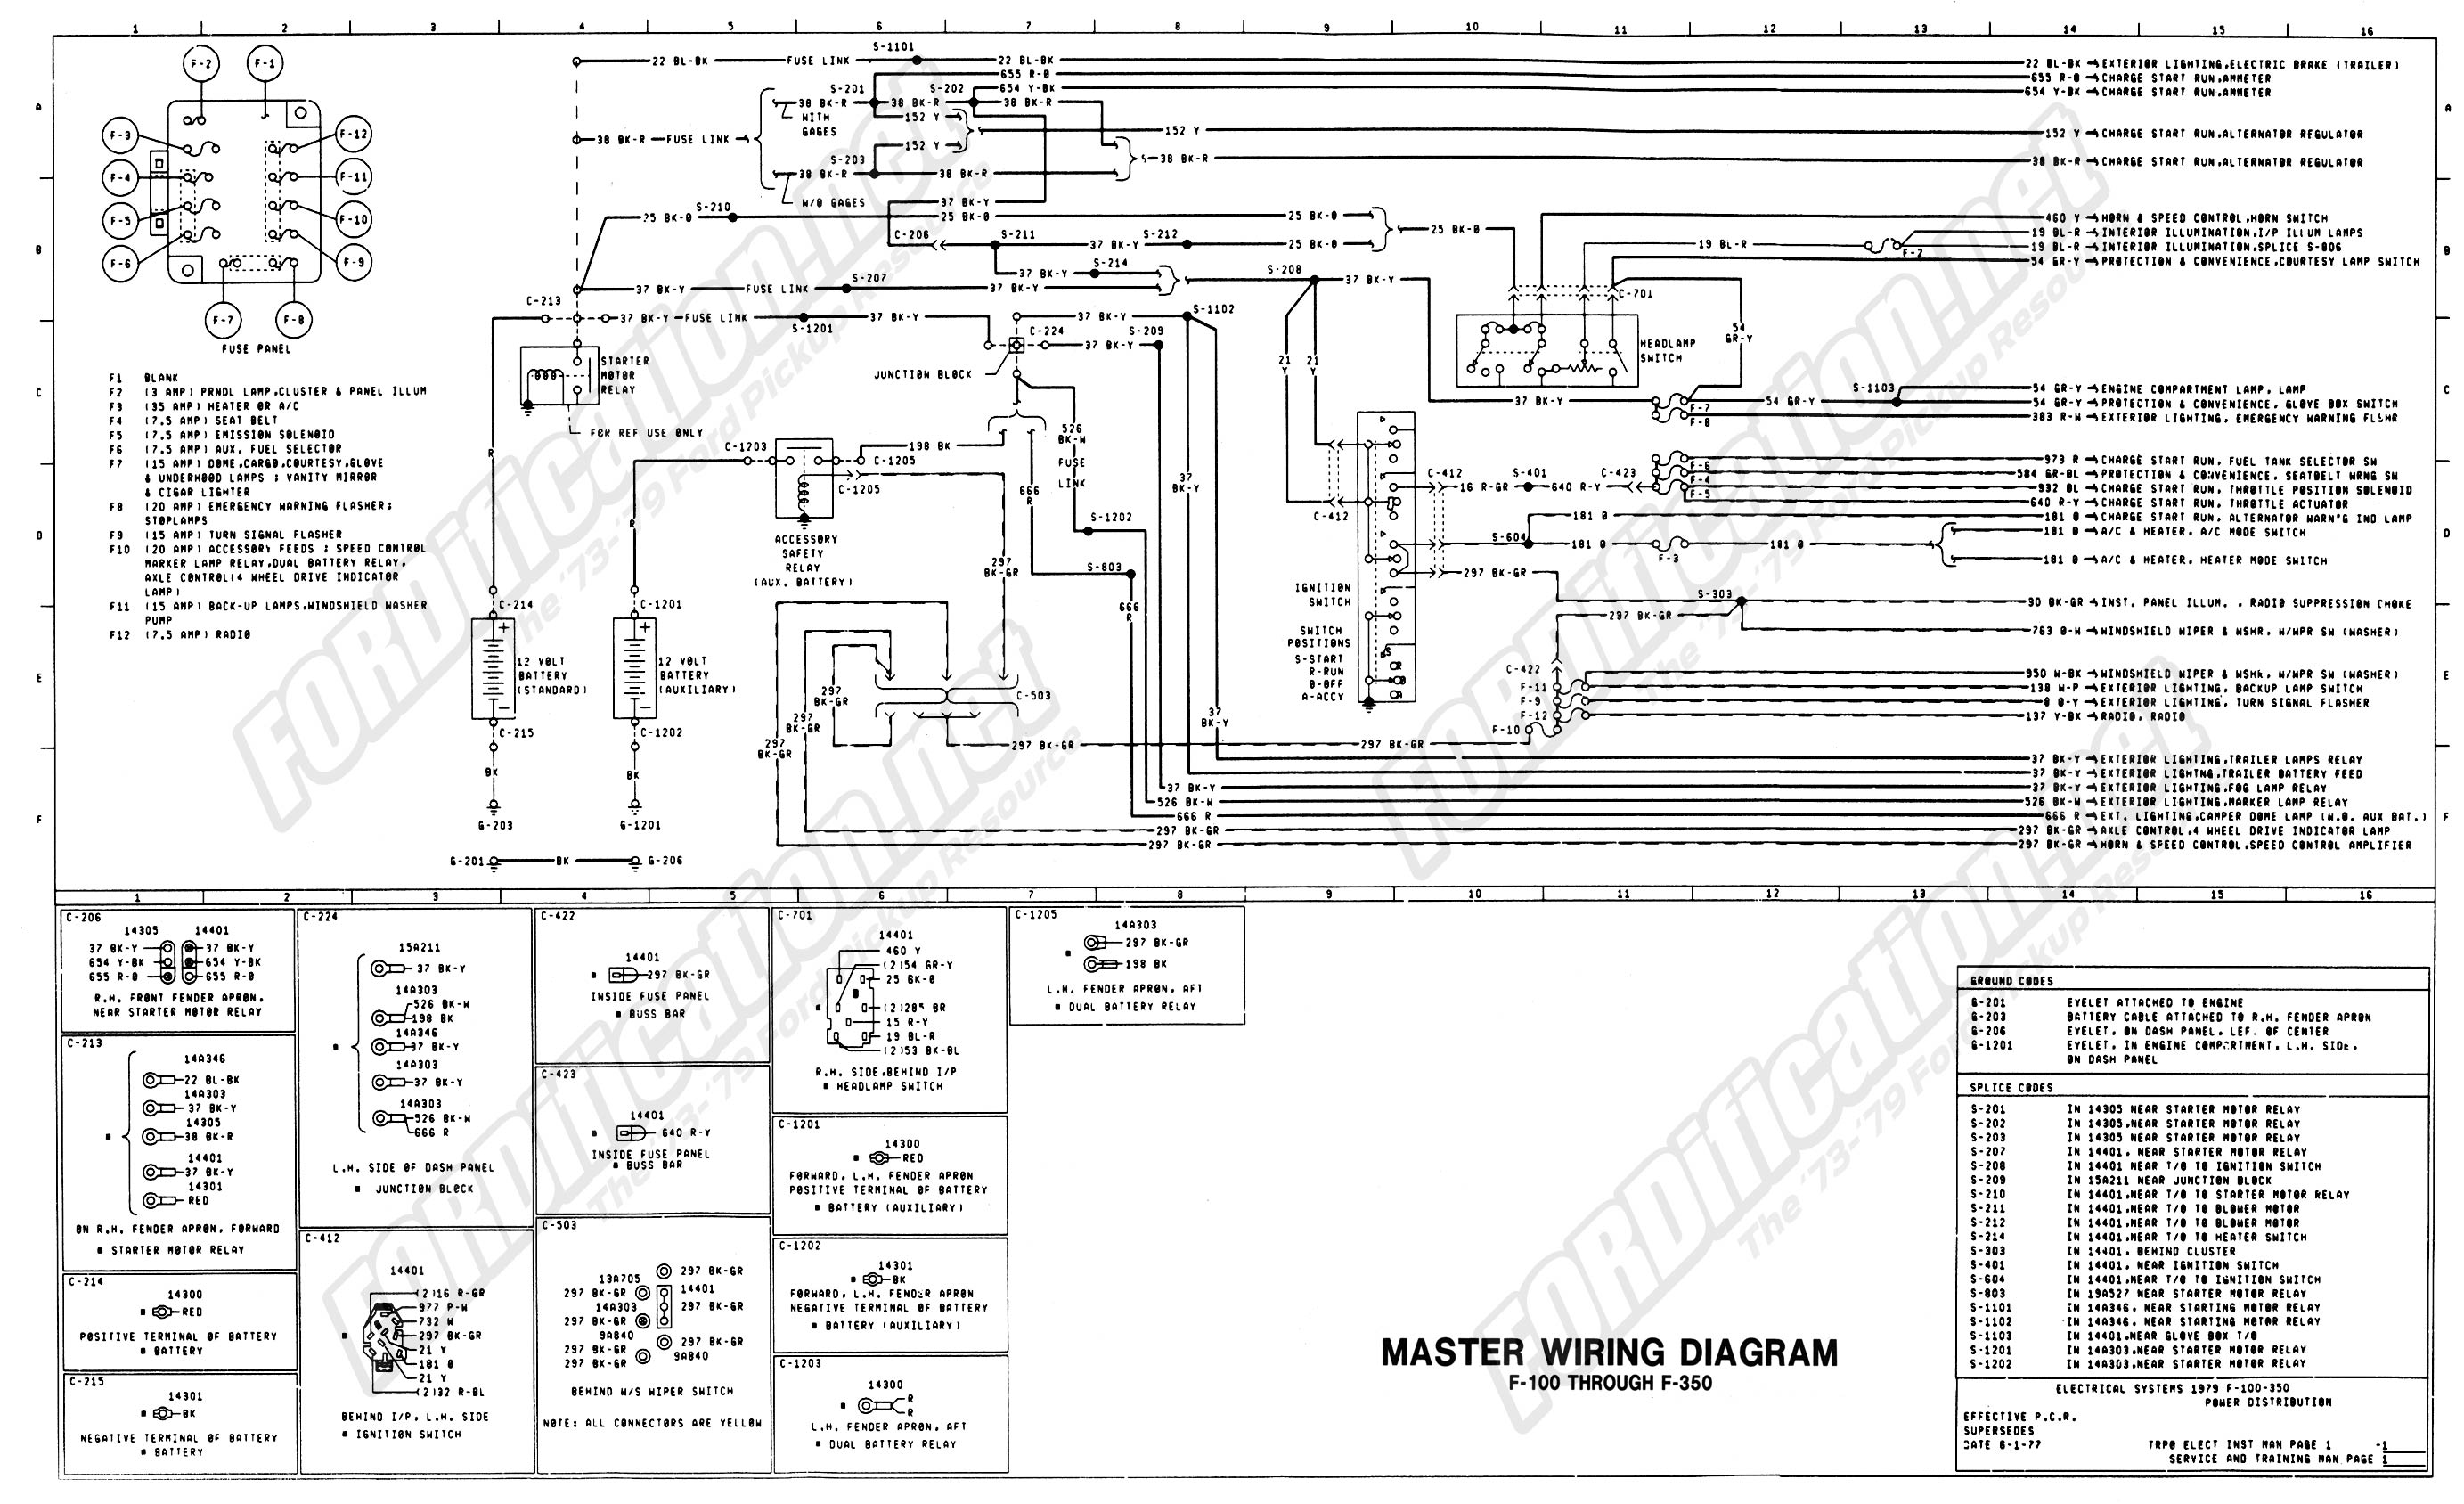 wiring_79master_1of9 06 silverado ignition switch wiring diagram wiring diagram 79 f150 tail light wiring diagram at soozxer.org